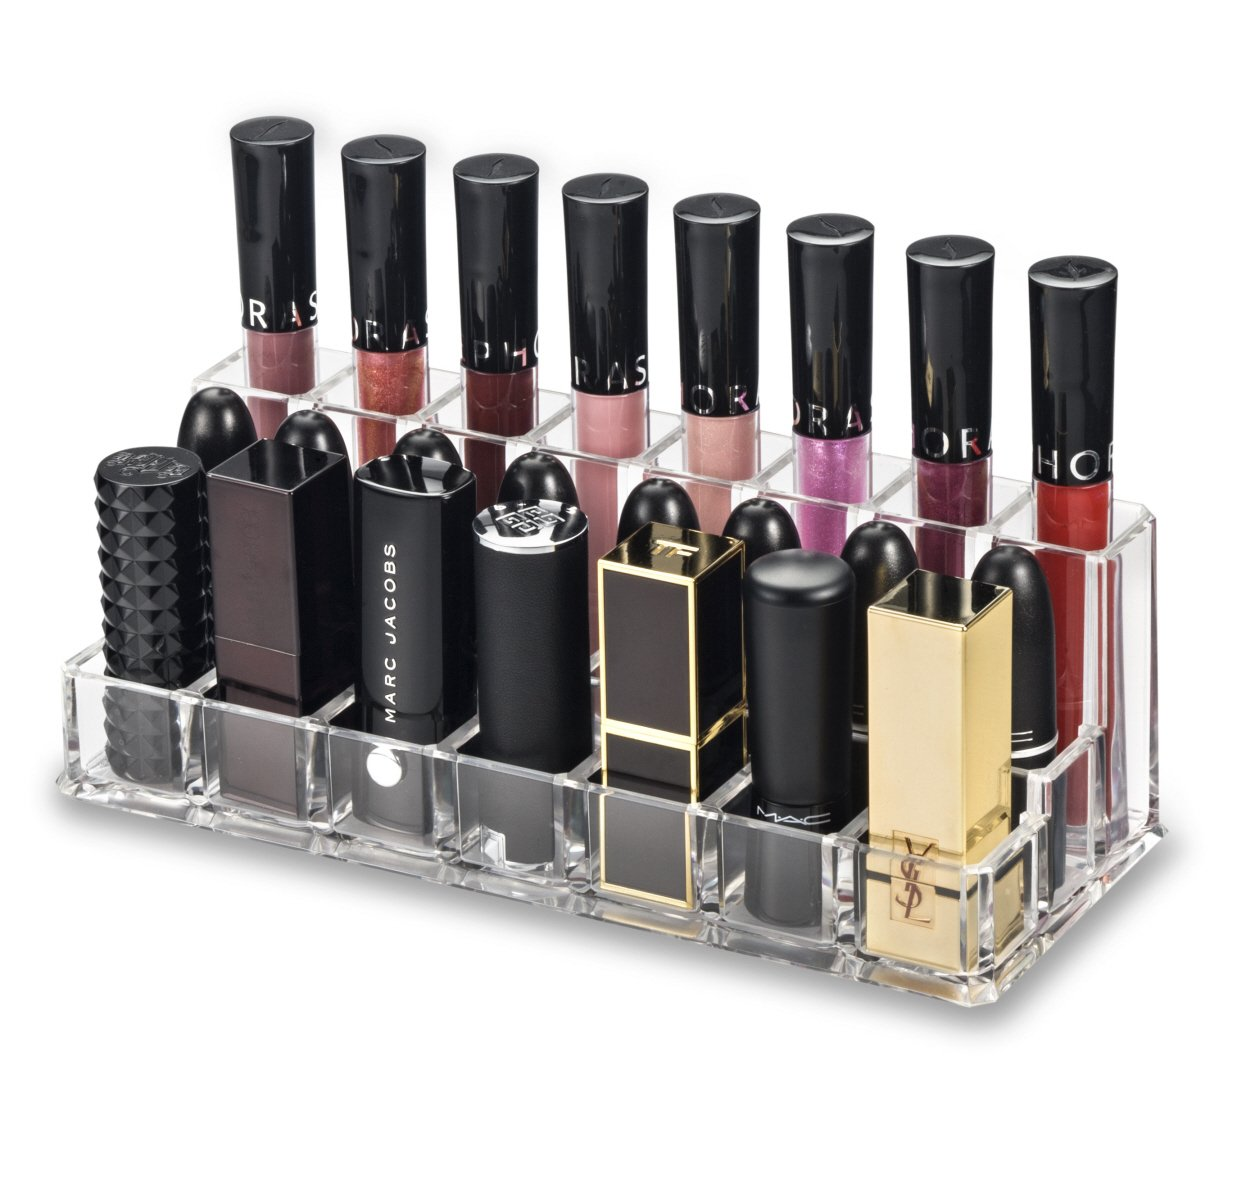 byAlegory Acrylic Lip Makeup Organiser | Combination Rows For Lip Gloss (Back Row), Lipstick & Larger Base Lipsticks (Front Row) PC-15-T